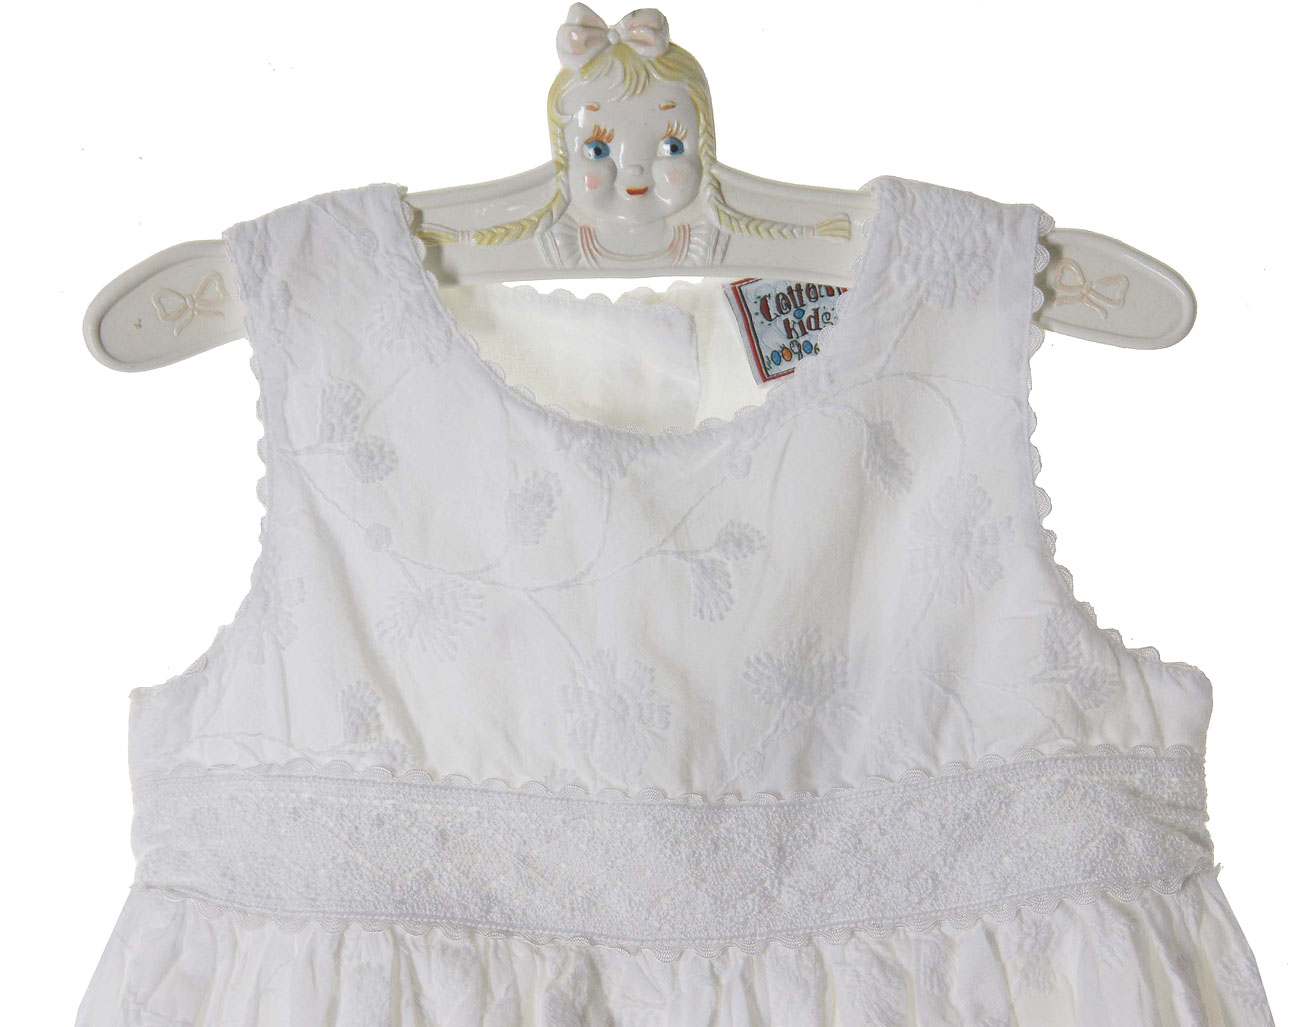 8ccd9400d NEW Cotton Kids White Embroidered Eyelet Dress with Crocheted Lace Trim